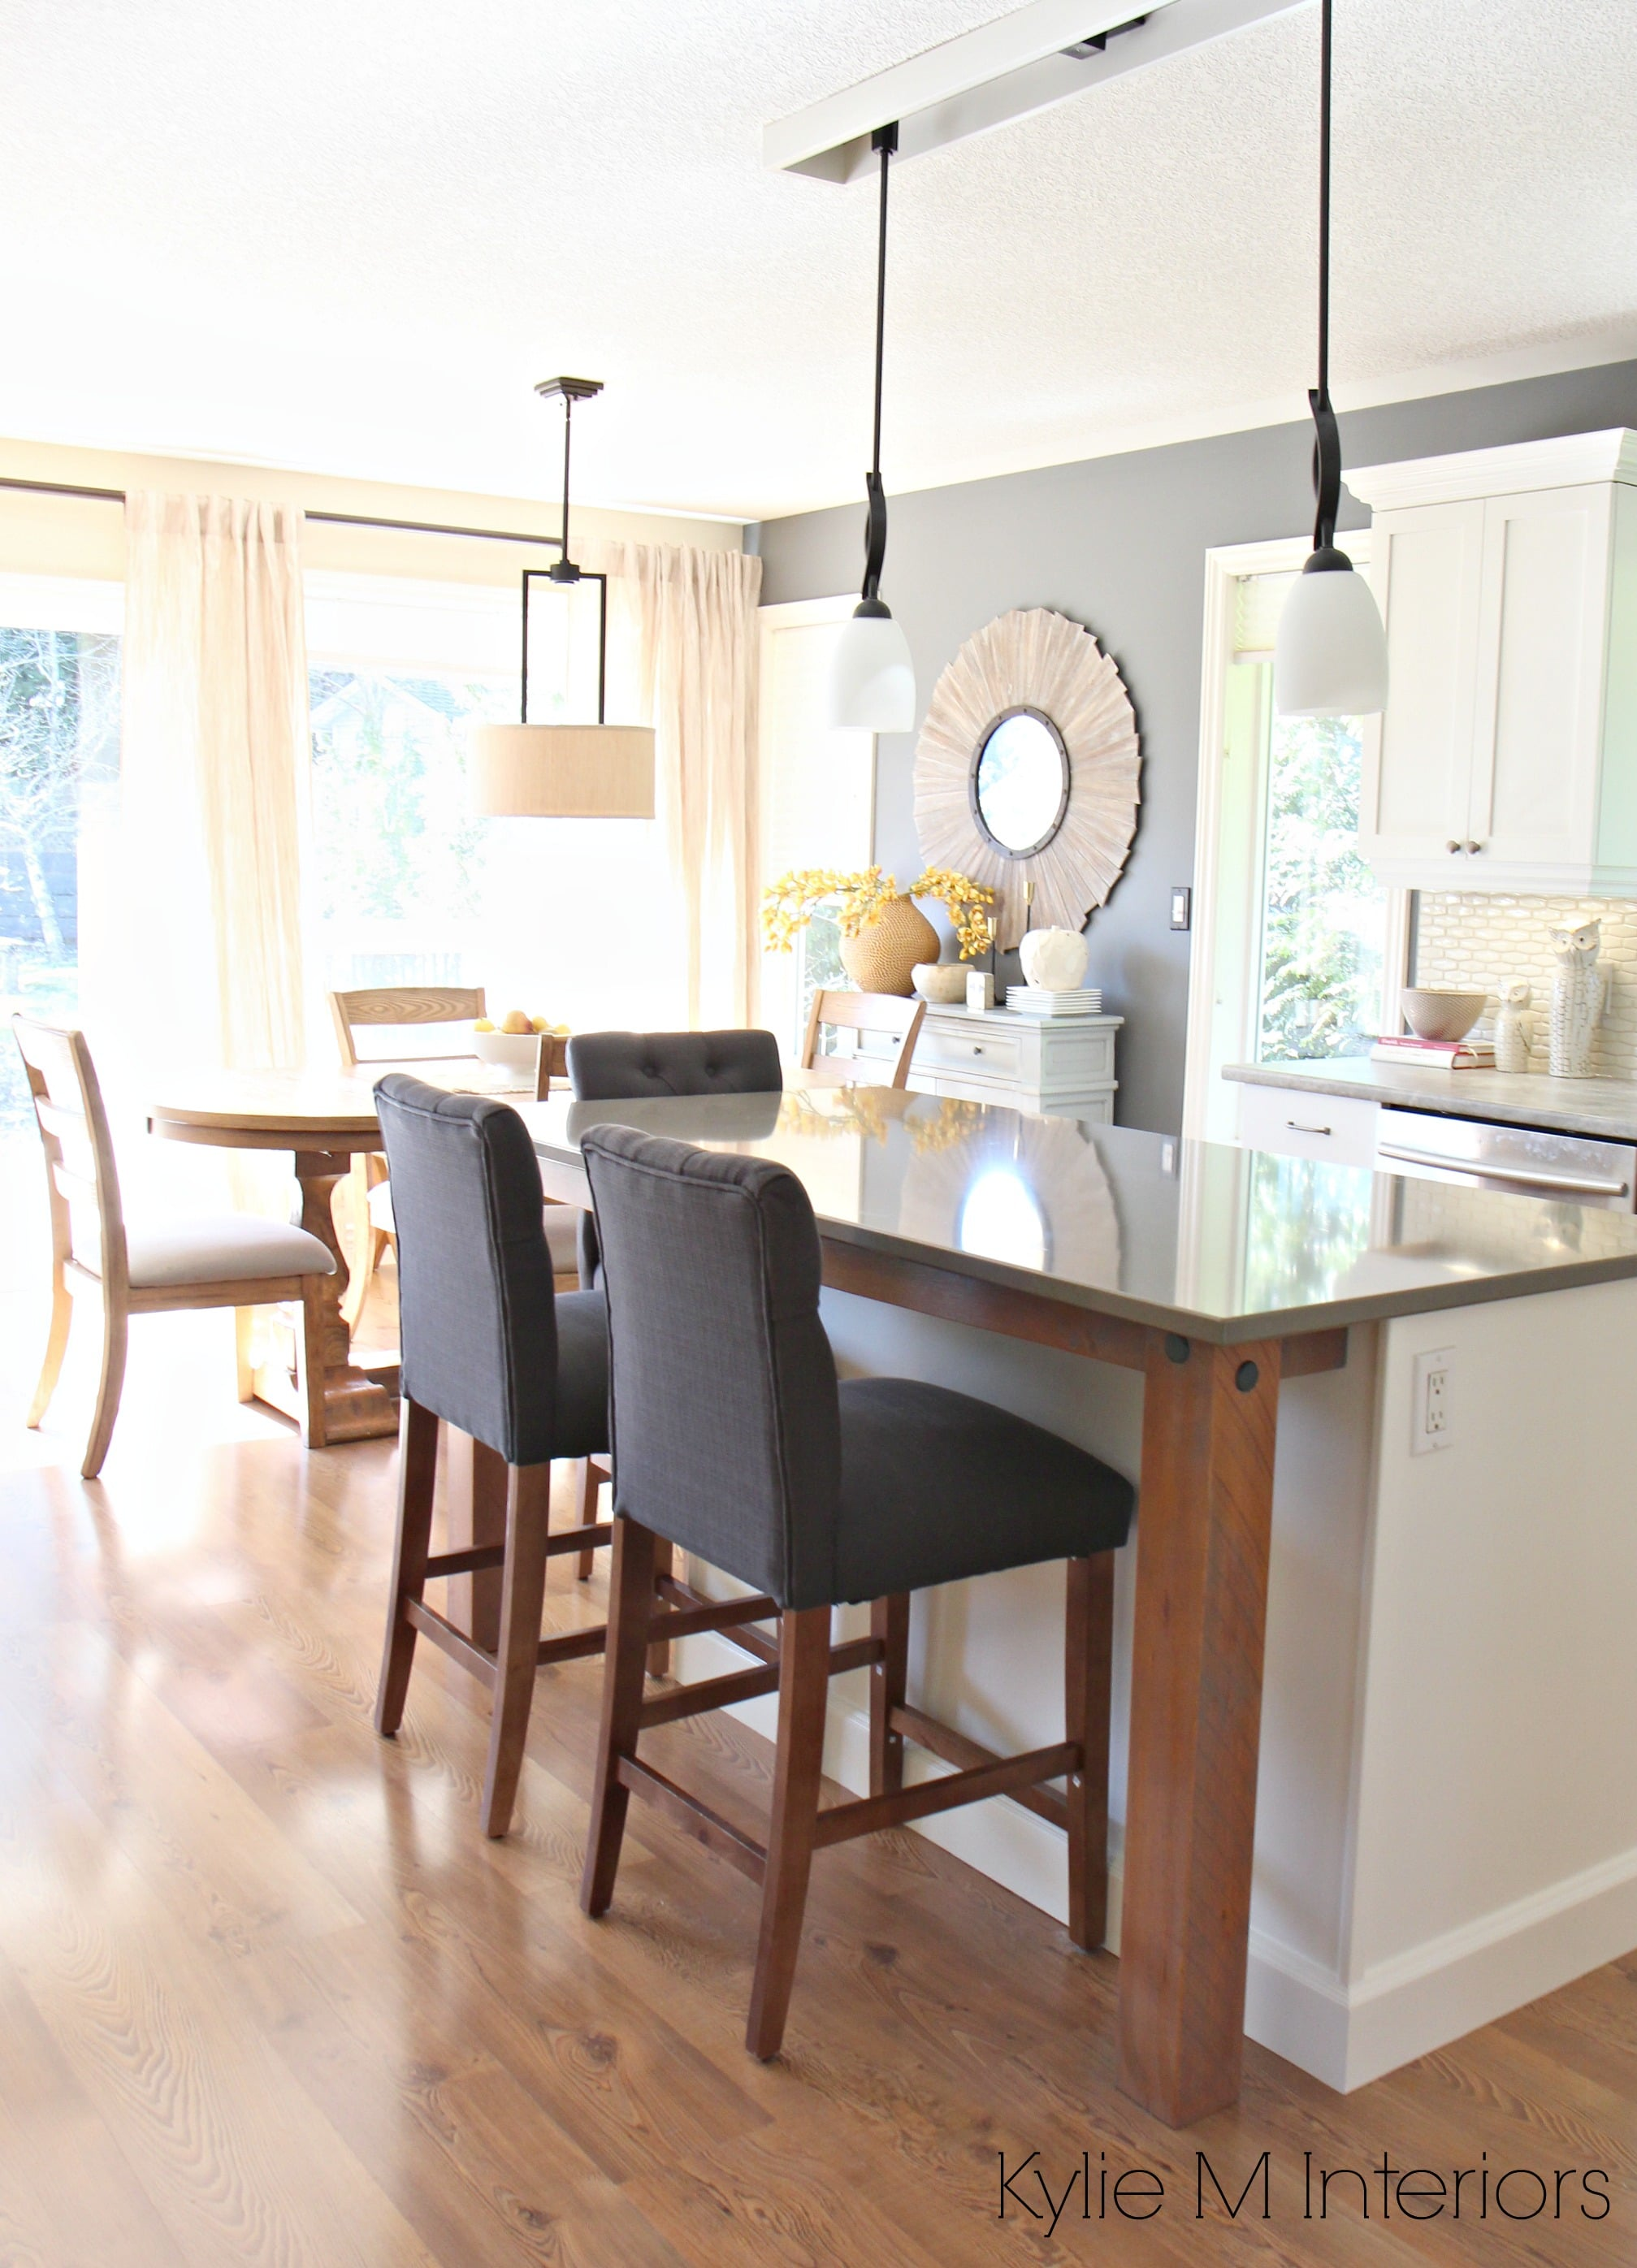 supports Benjamin Moore Gray on walls and Cloud White maple cabinets